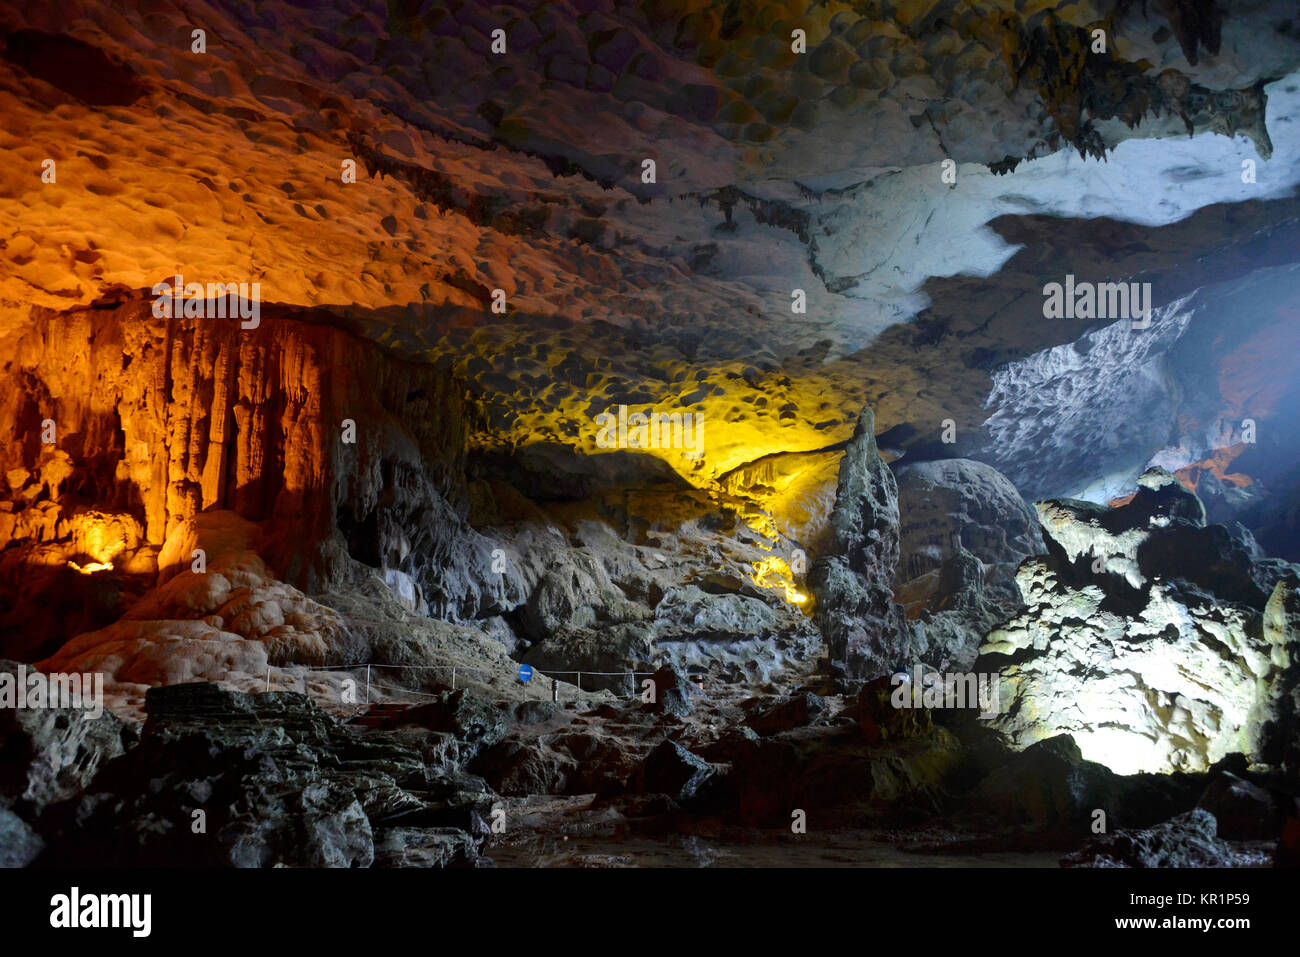 Slope Sung Sot cave, Halong bay, Vietnam, Hang Sung Sot Hoehle, Halong-Bucht - Stock Image